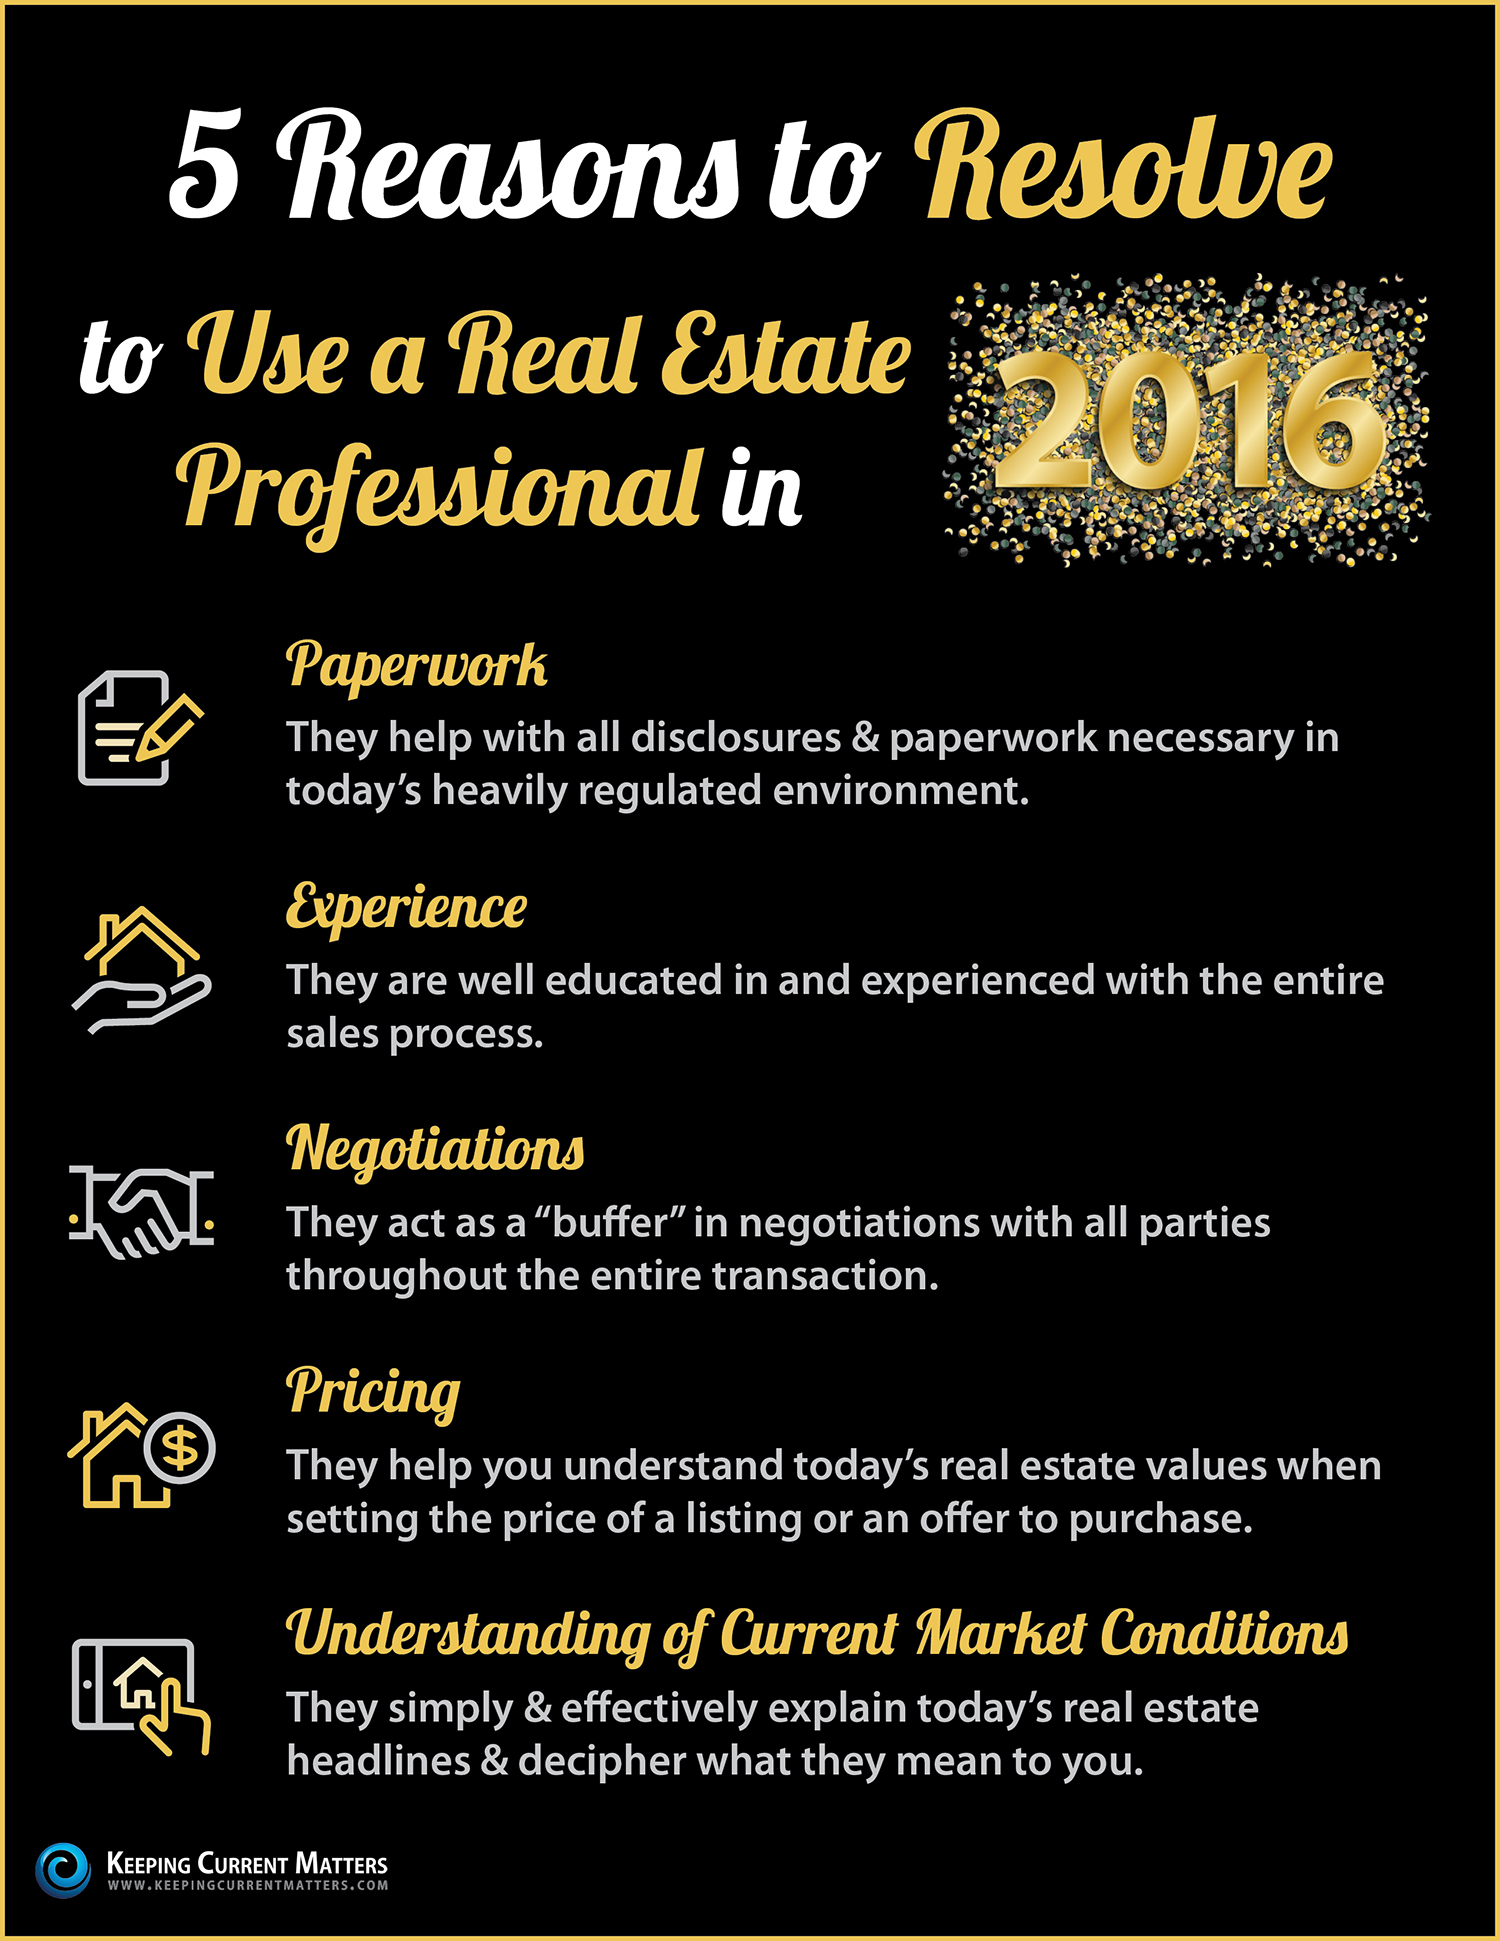 Resolve to Use a Real Estate Professional in 2016 [INFOGRAPHIC]   Keeping Current Matters